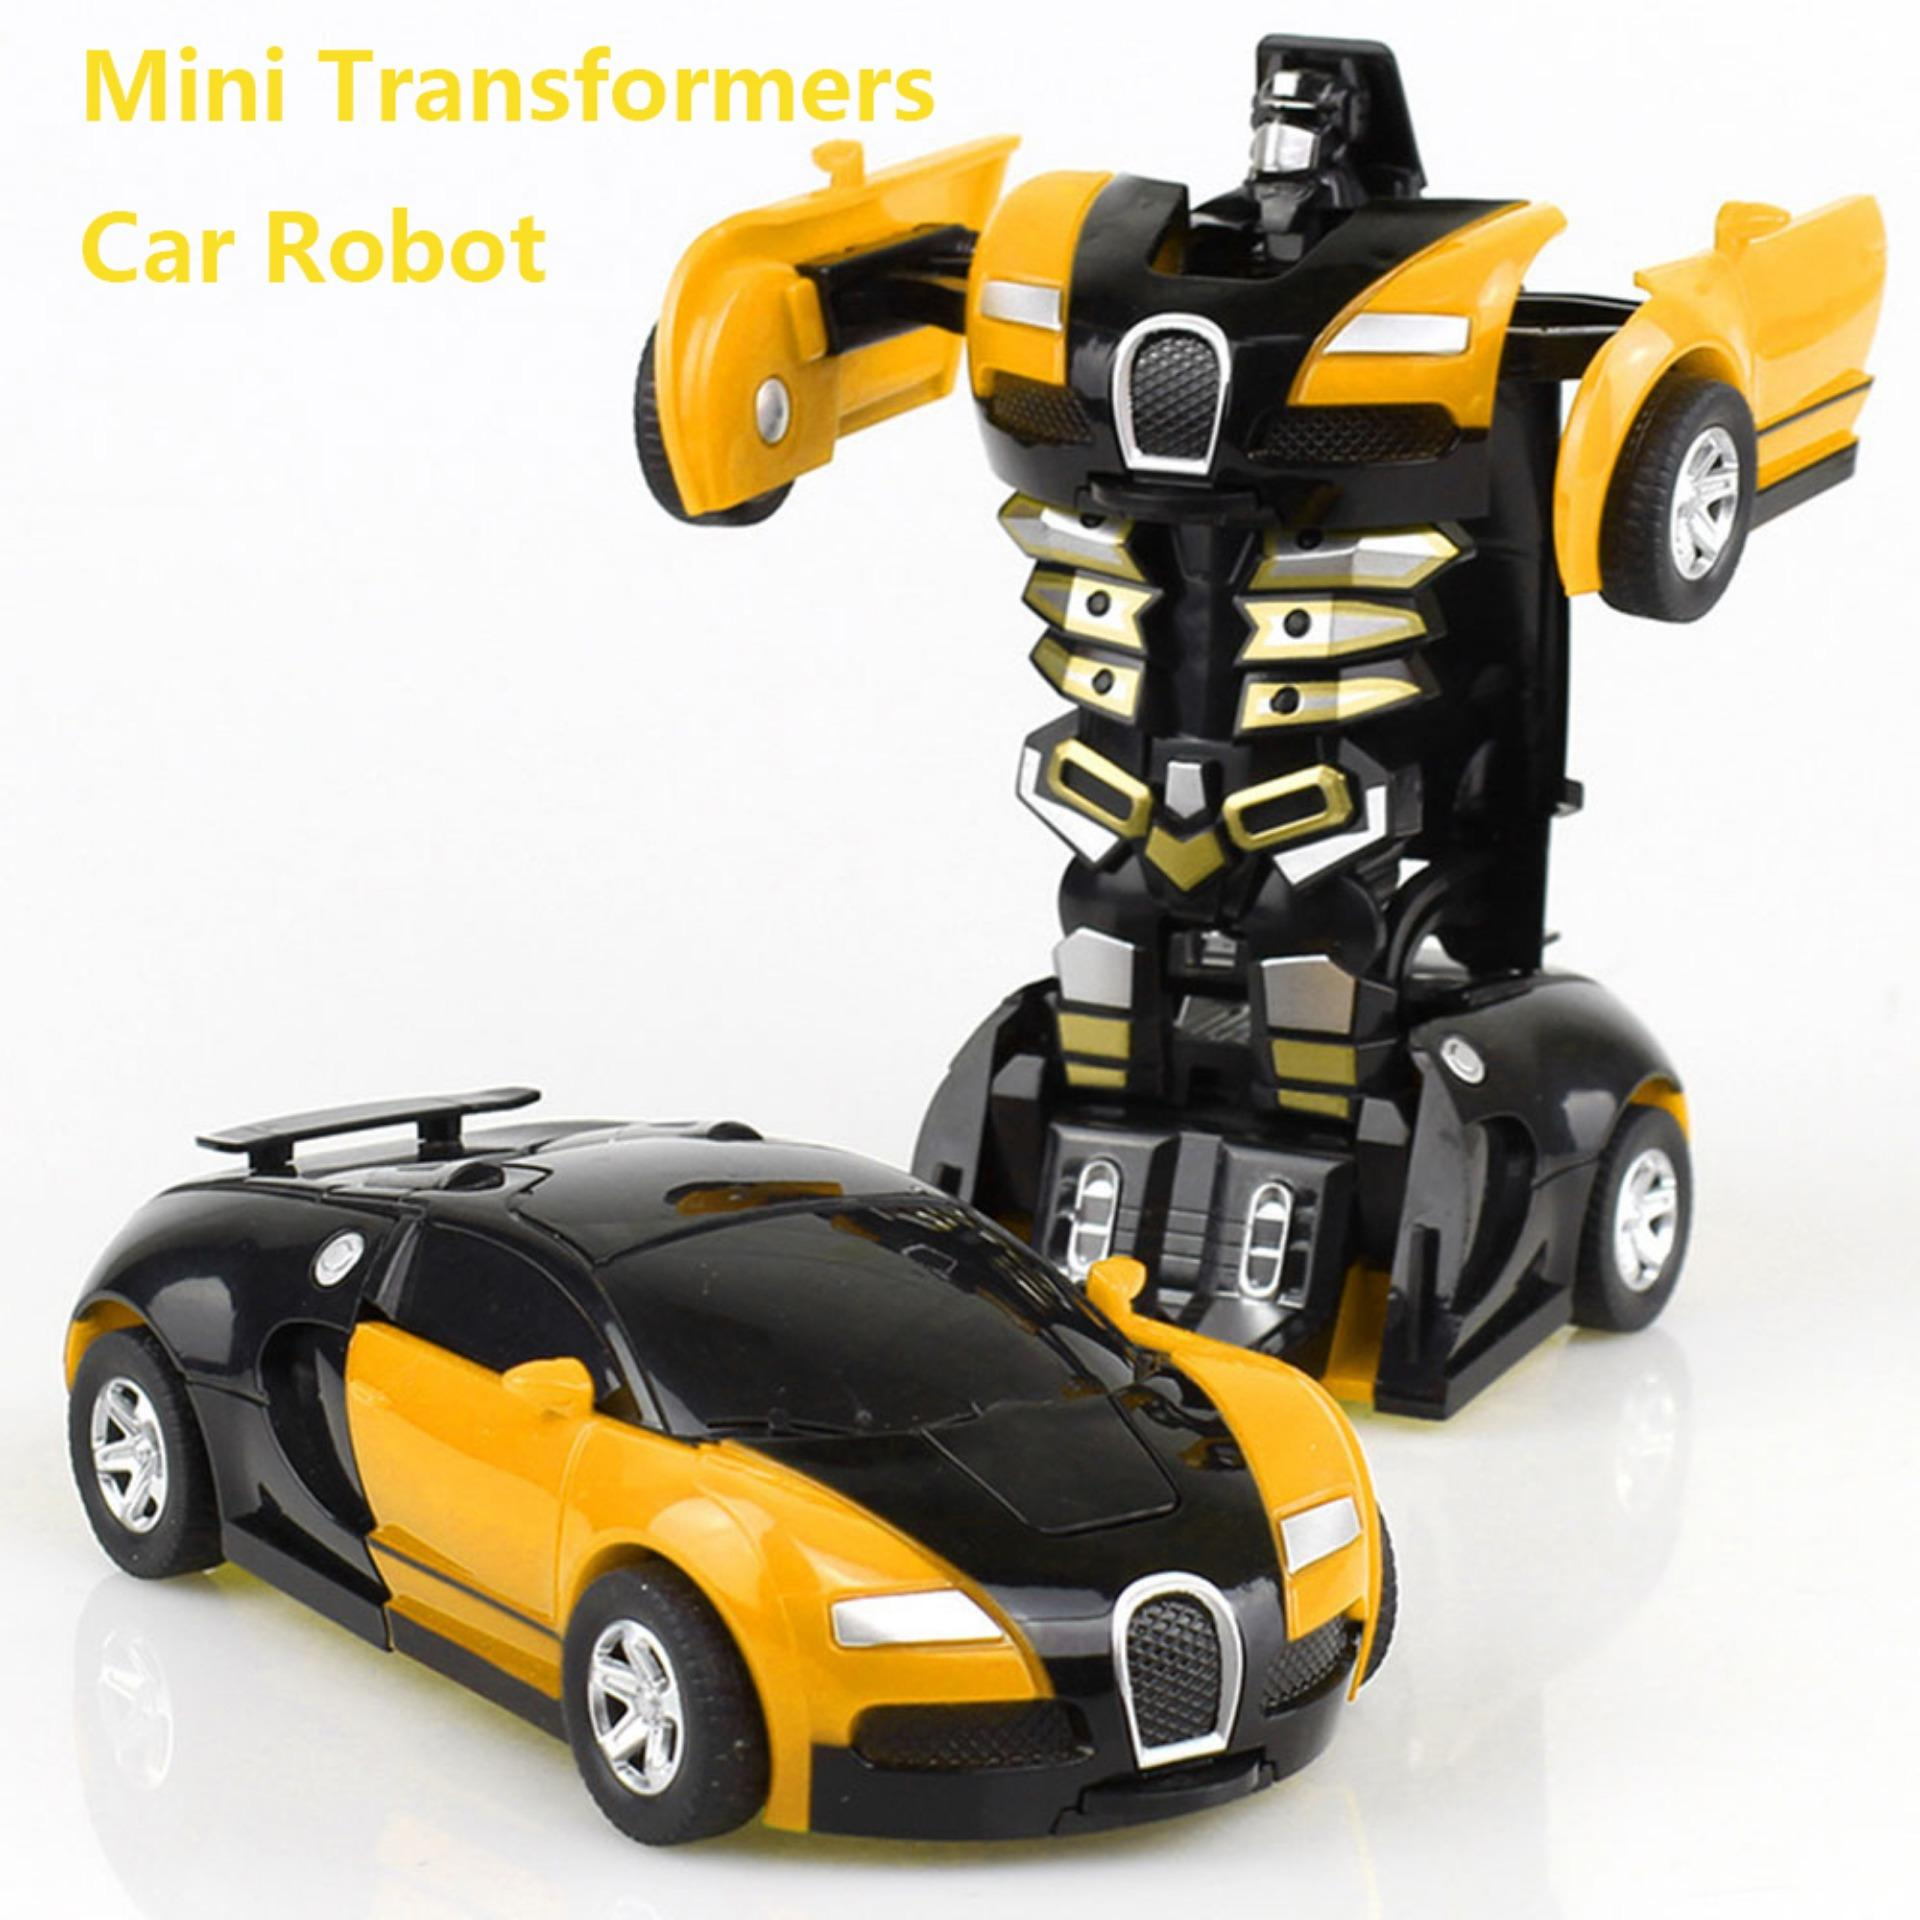 Transformers Car,rescue Bots Deformation Transformer Car One-Step Car Robot Vehicle Model Action Figures Toy Transform Car For Kids By Kobwa Direct.